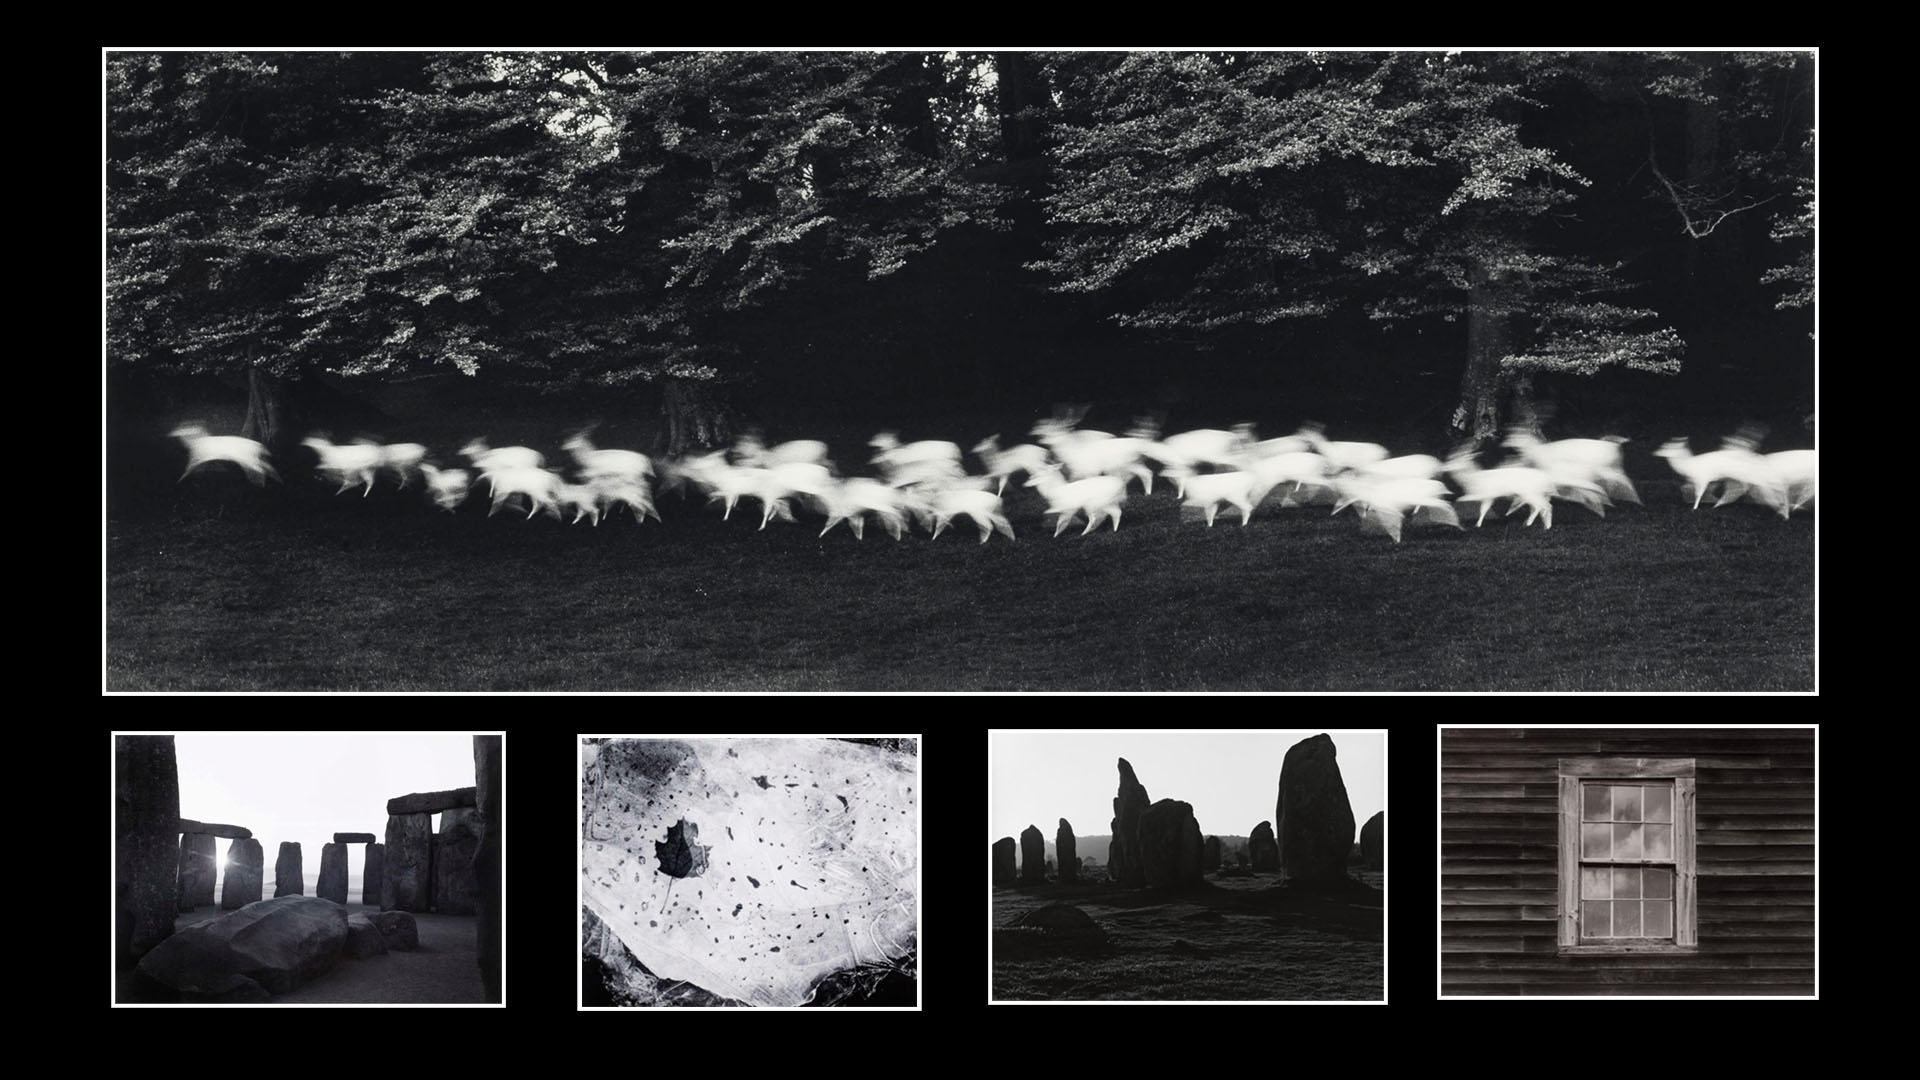 Photographs by Paul Caponigro